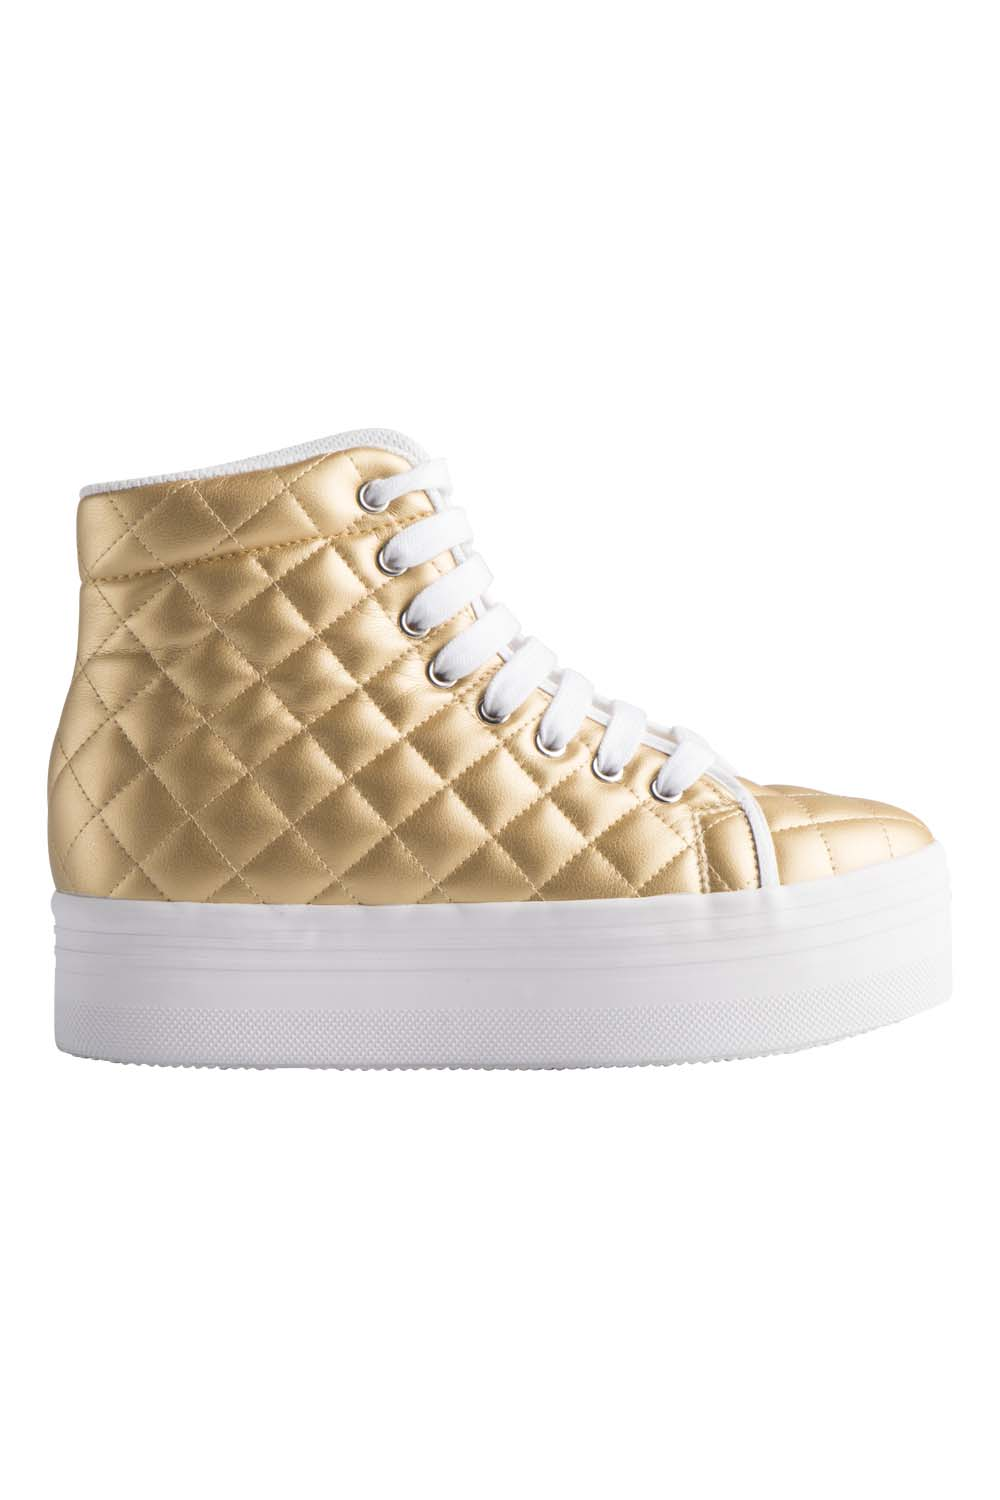 JEFFREY CAMPBELL SNEAKERS - HOMG GOLD QUILTED.jpg